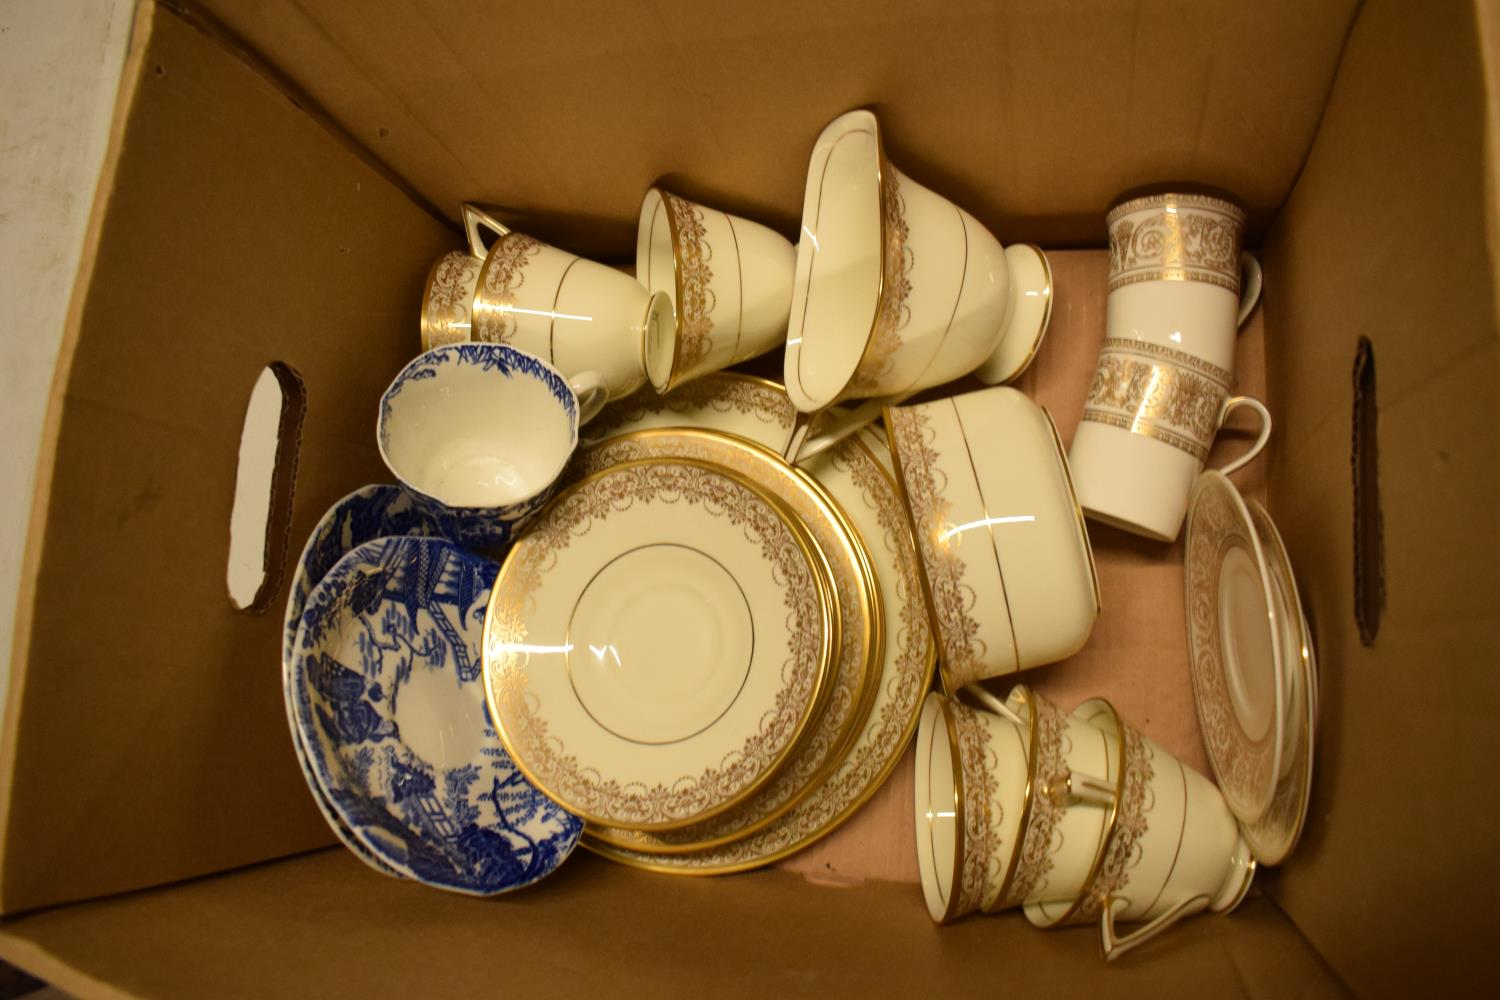 Royal Doulton part tea set and other tea ware. Condition is generally good. No condition reports